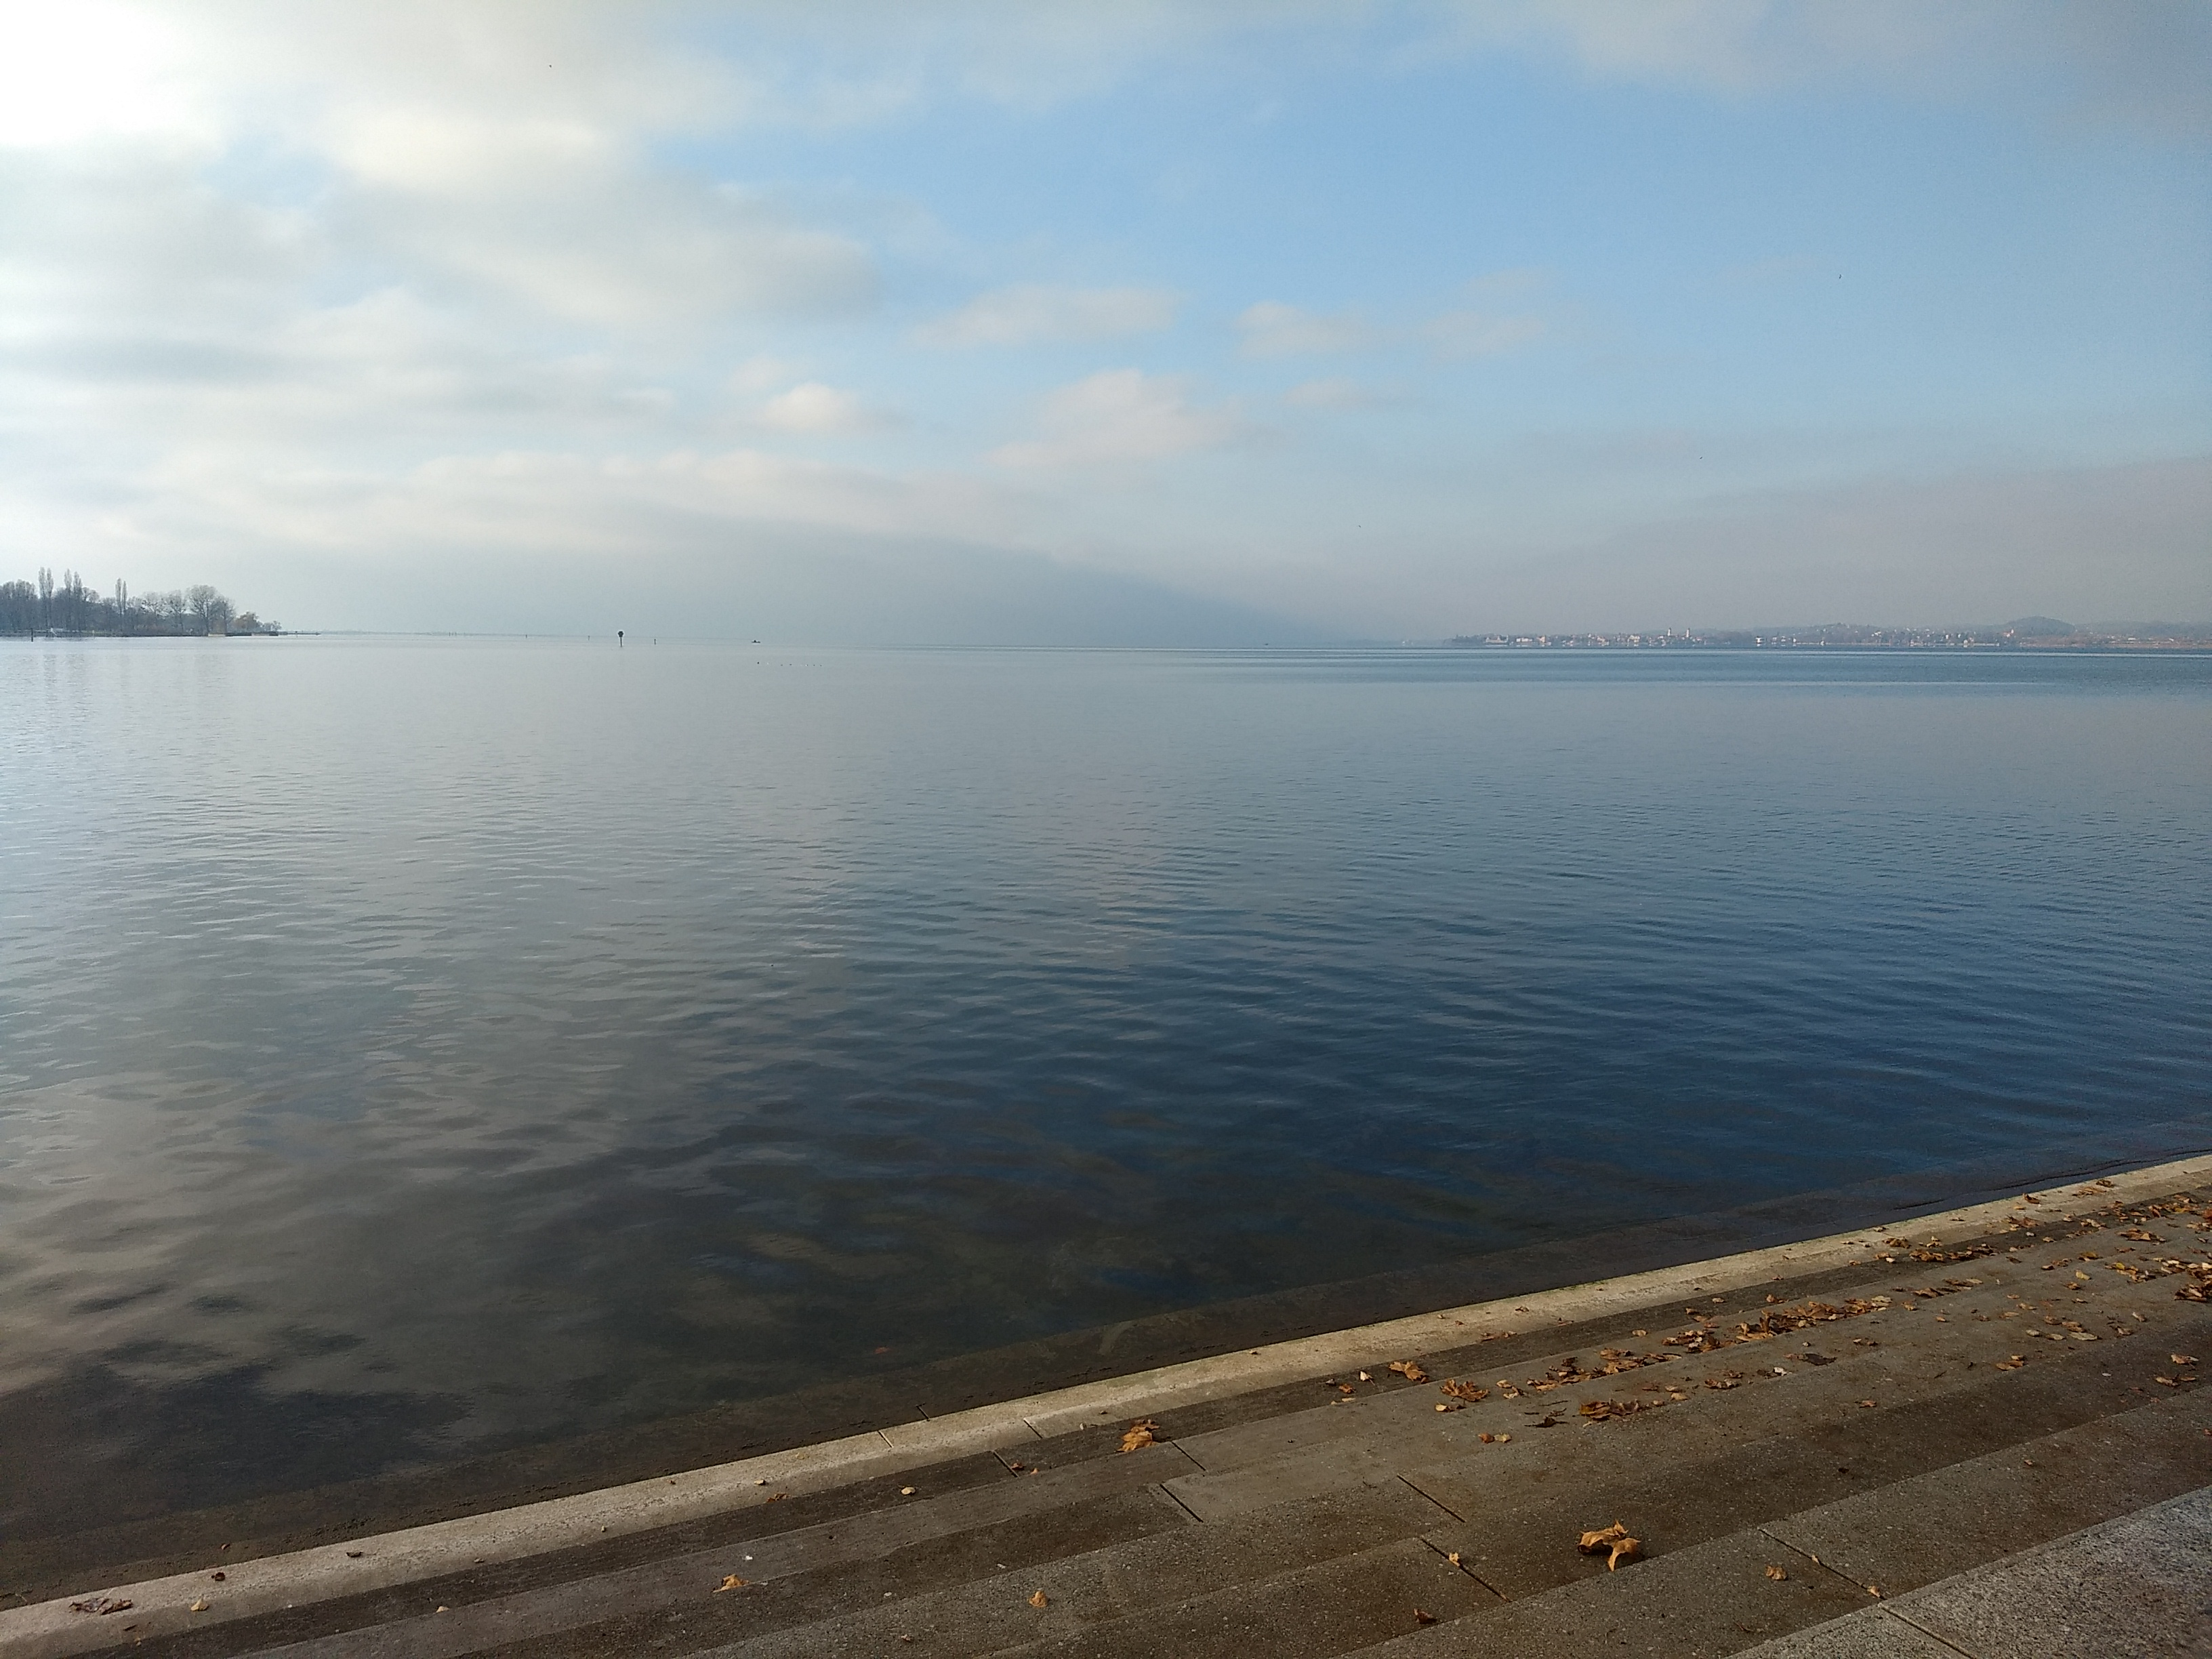 A view of a still lake and a cool sky from a stone breakwater